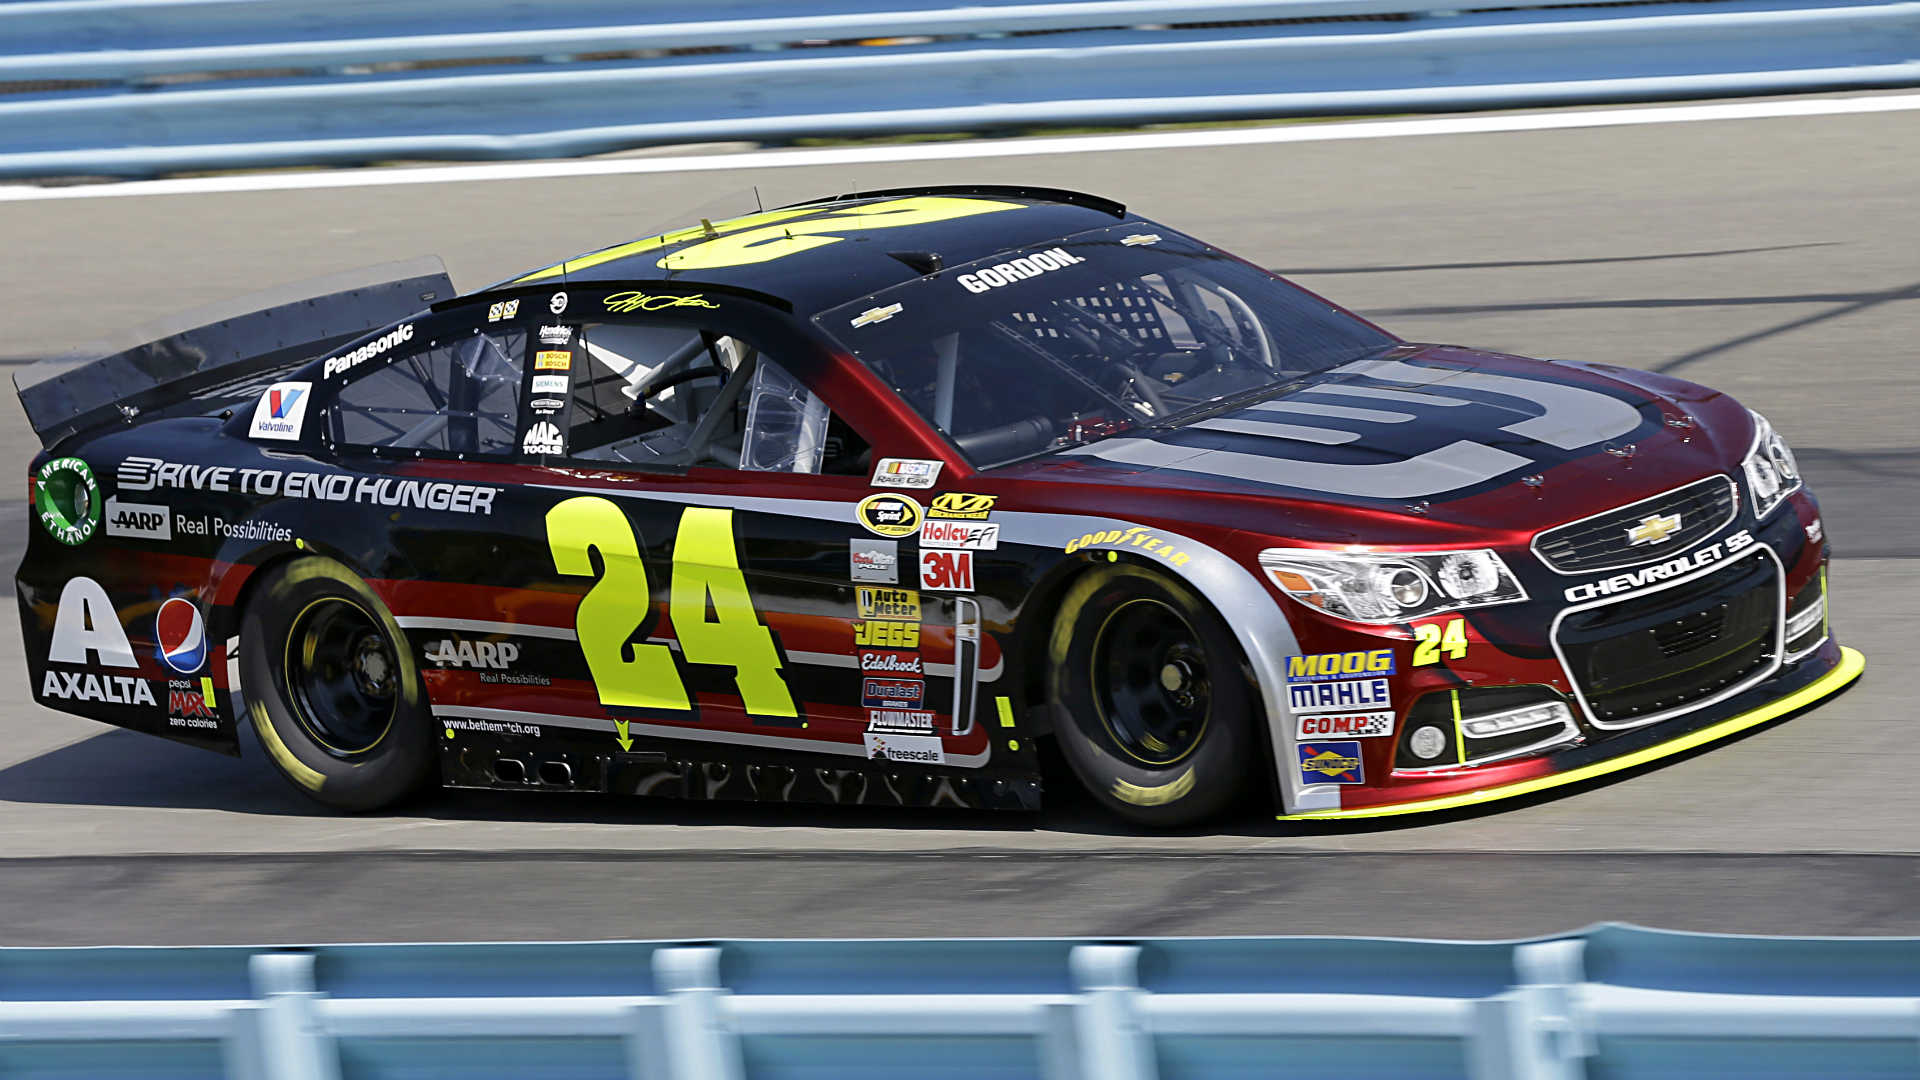 jeff-gordon-24-080914-AP-FTR.jpg